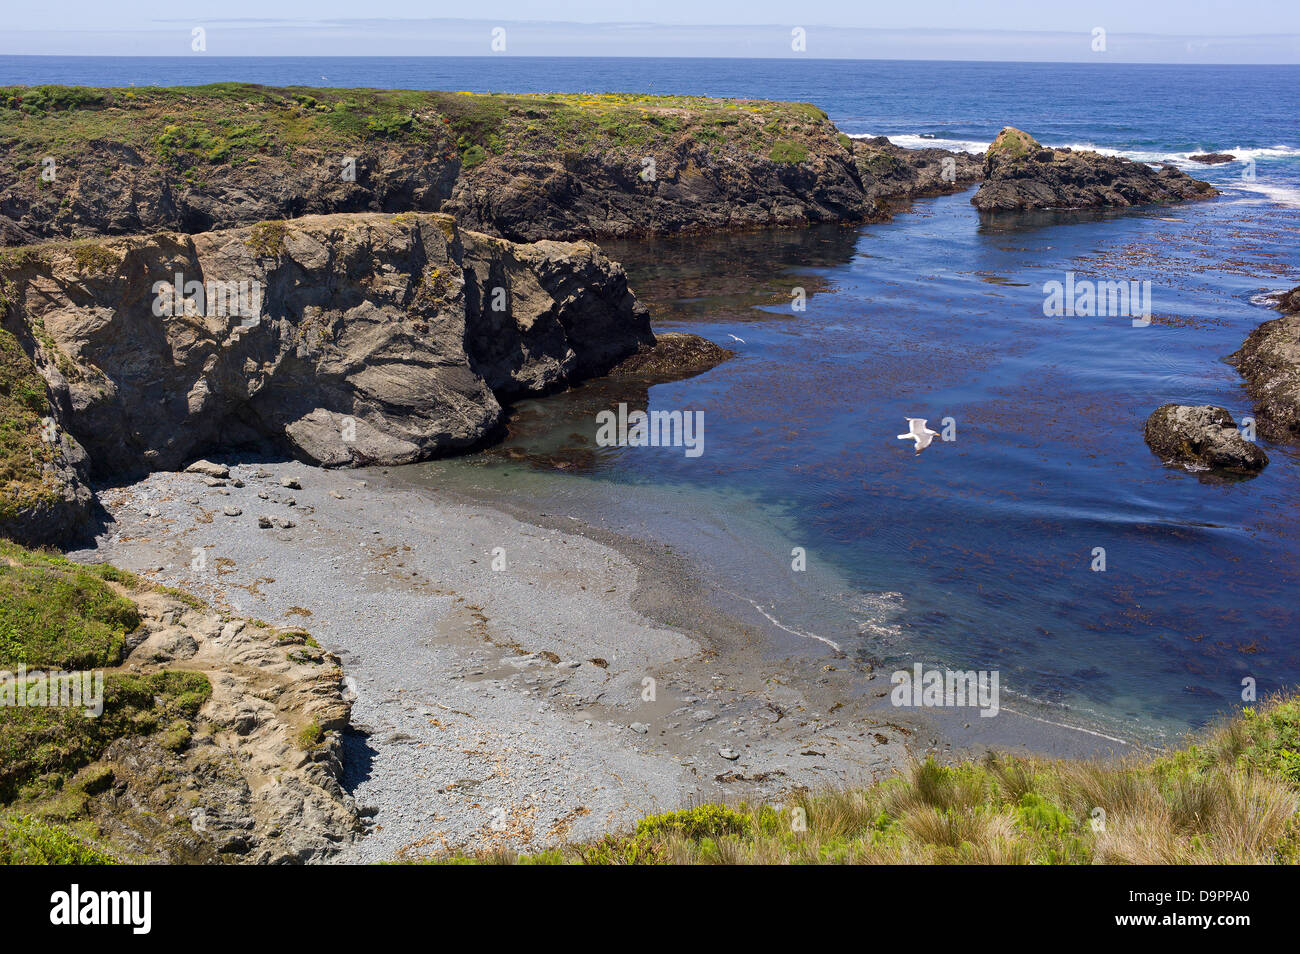 Pacific Ocean cove lagoon rocky beach sea cliff  water sandy beach Summer of 42 film location cooling beauty tranquil - Stock Image